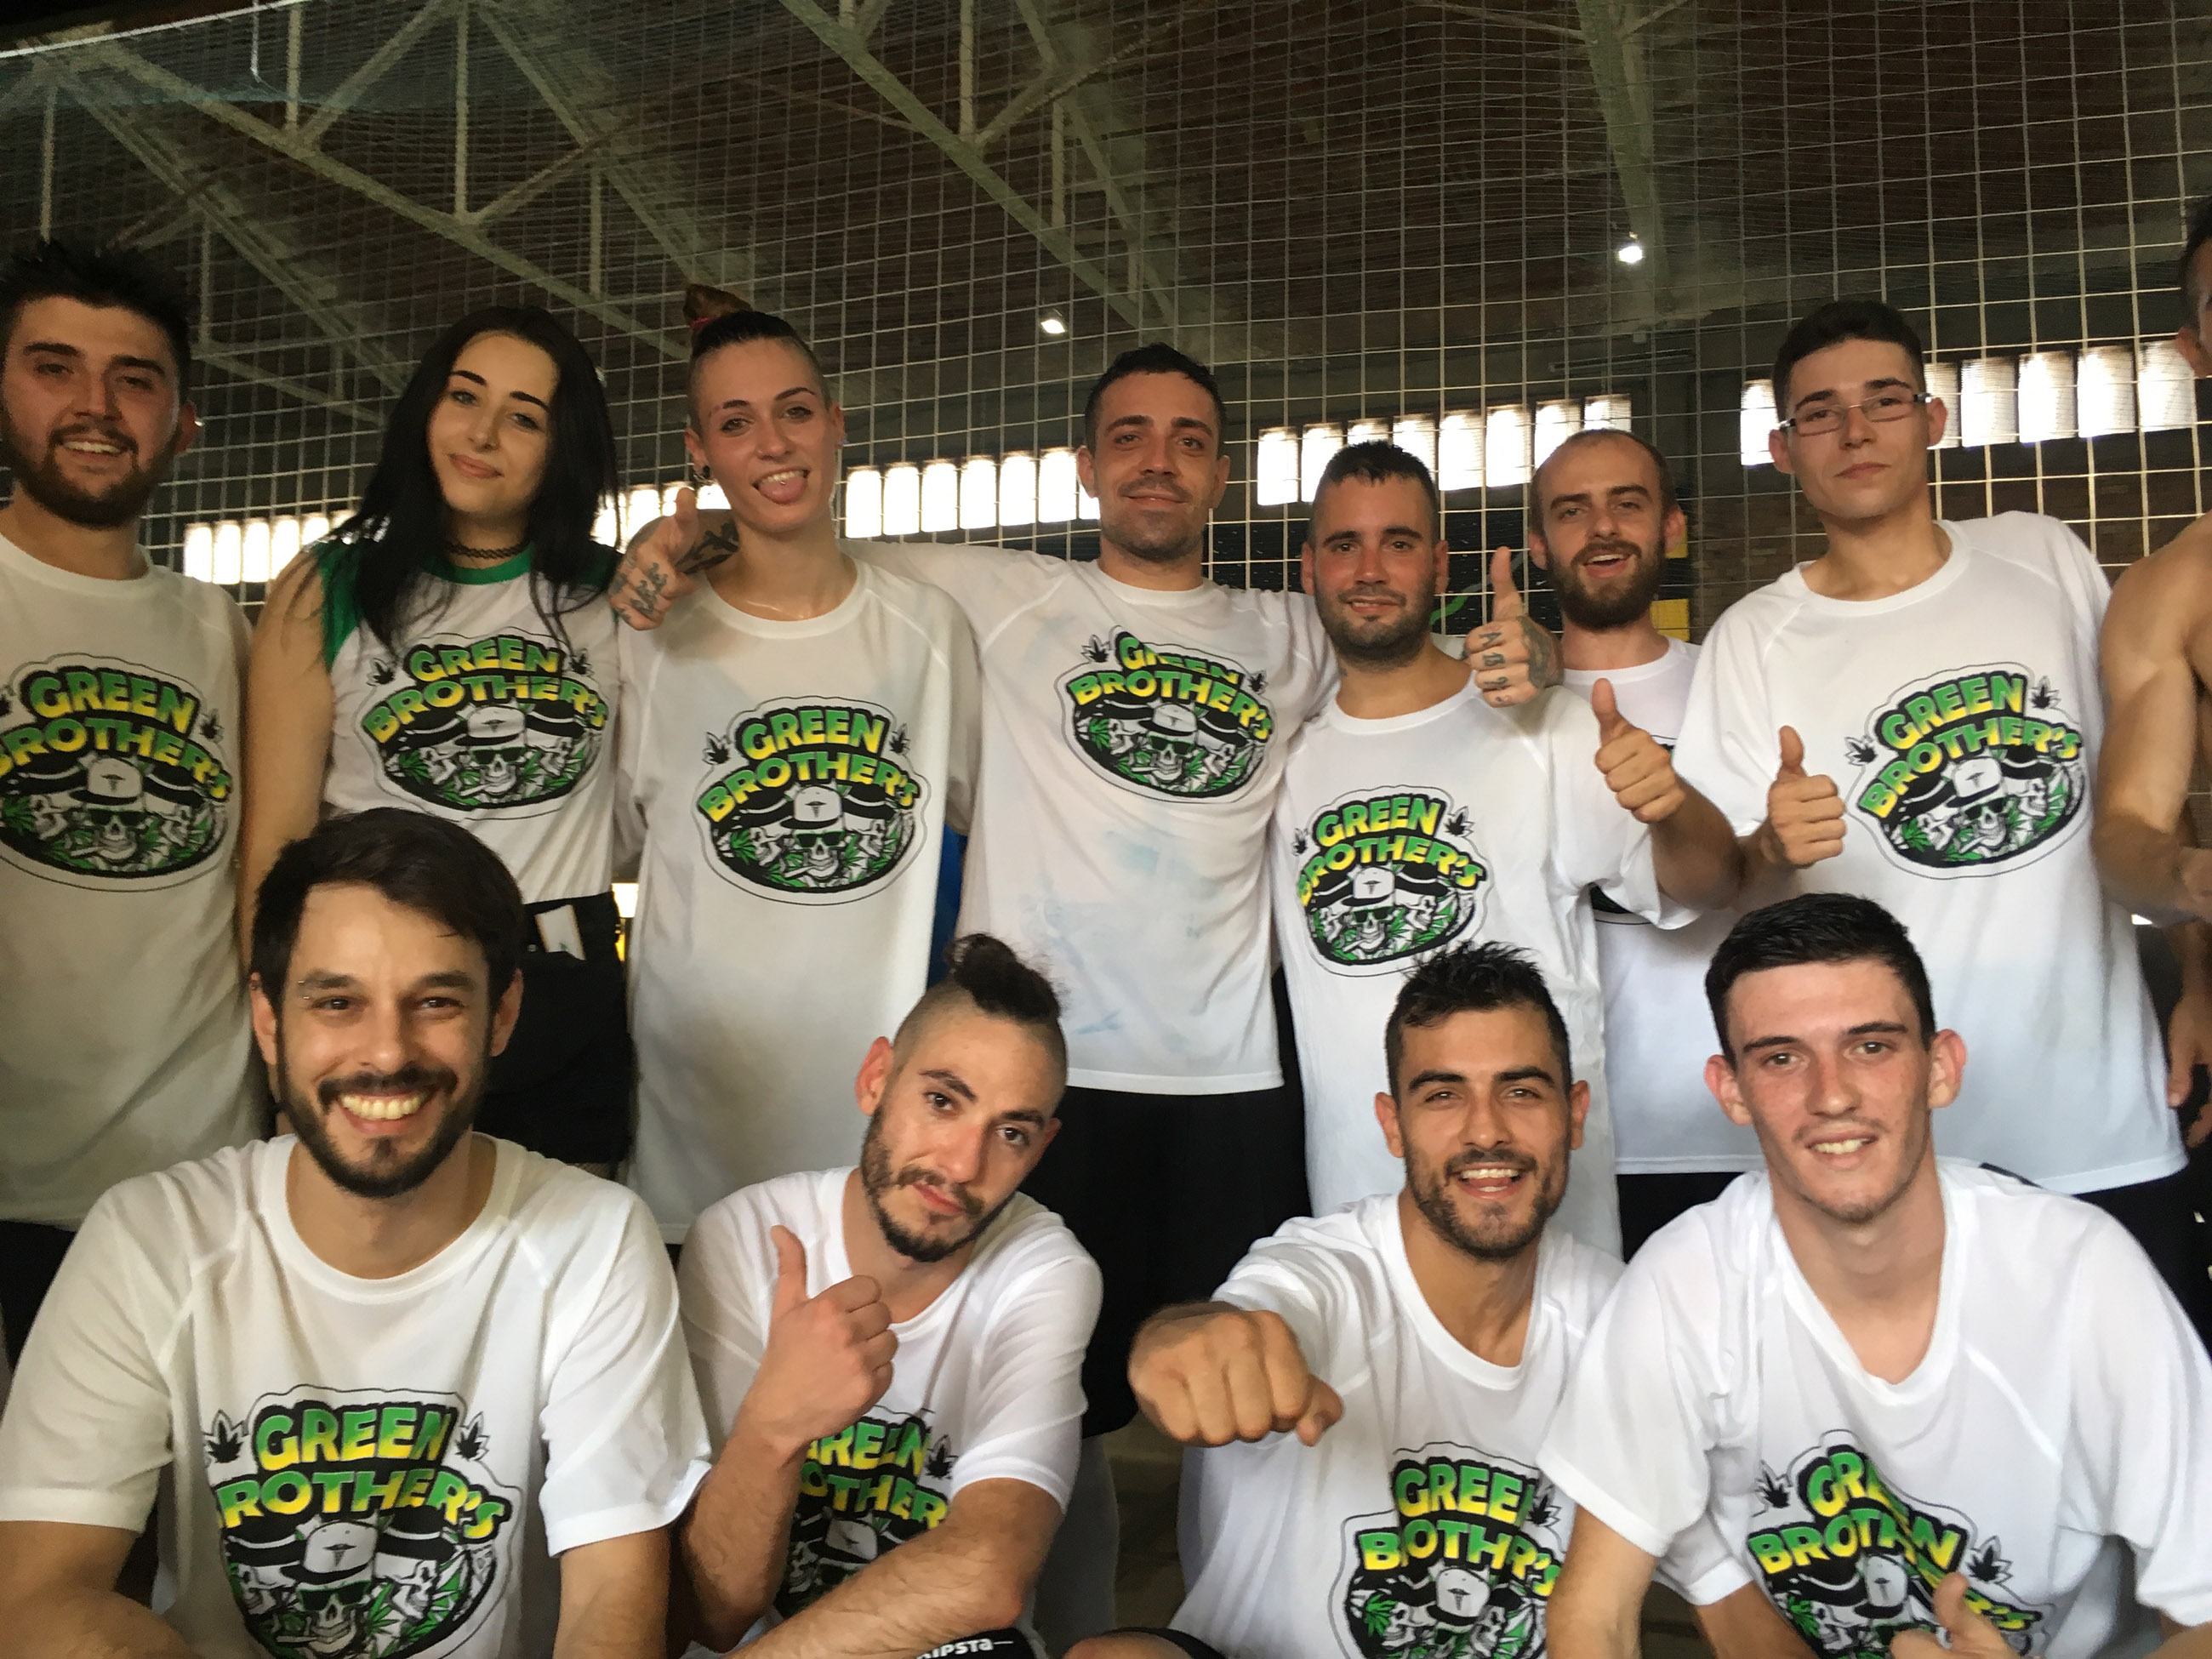 Photograph of the Green Brothers, which was taken for the Mary Jane Football League. Contrary to what the name suggests, there are also women in the Green Brothers team. The 11 male and female players are wearing white T-shirts of the Cannabis Dispensary Green Brothers, which is located in Barcelona.